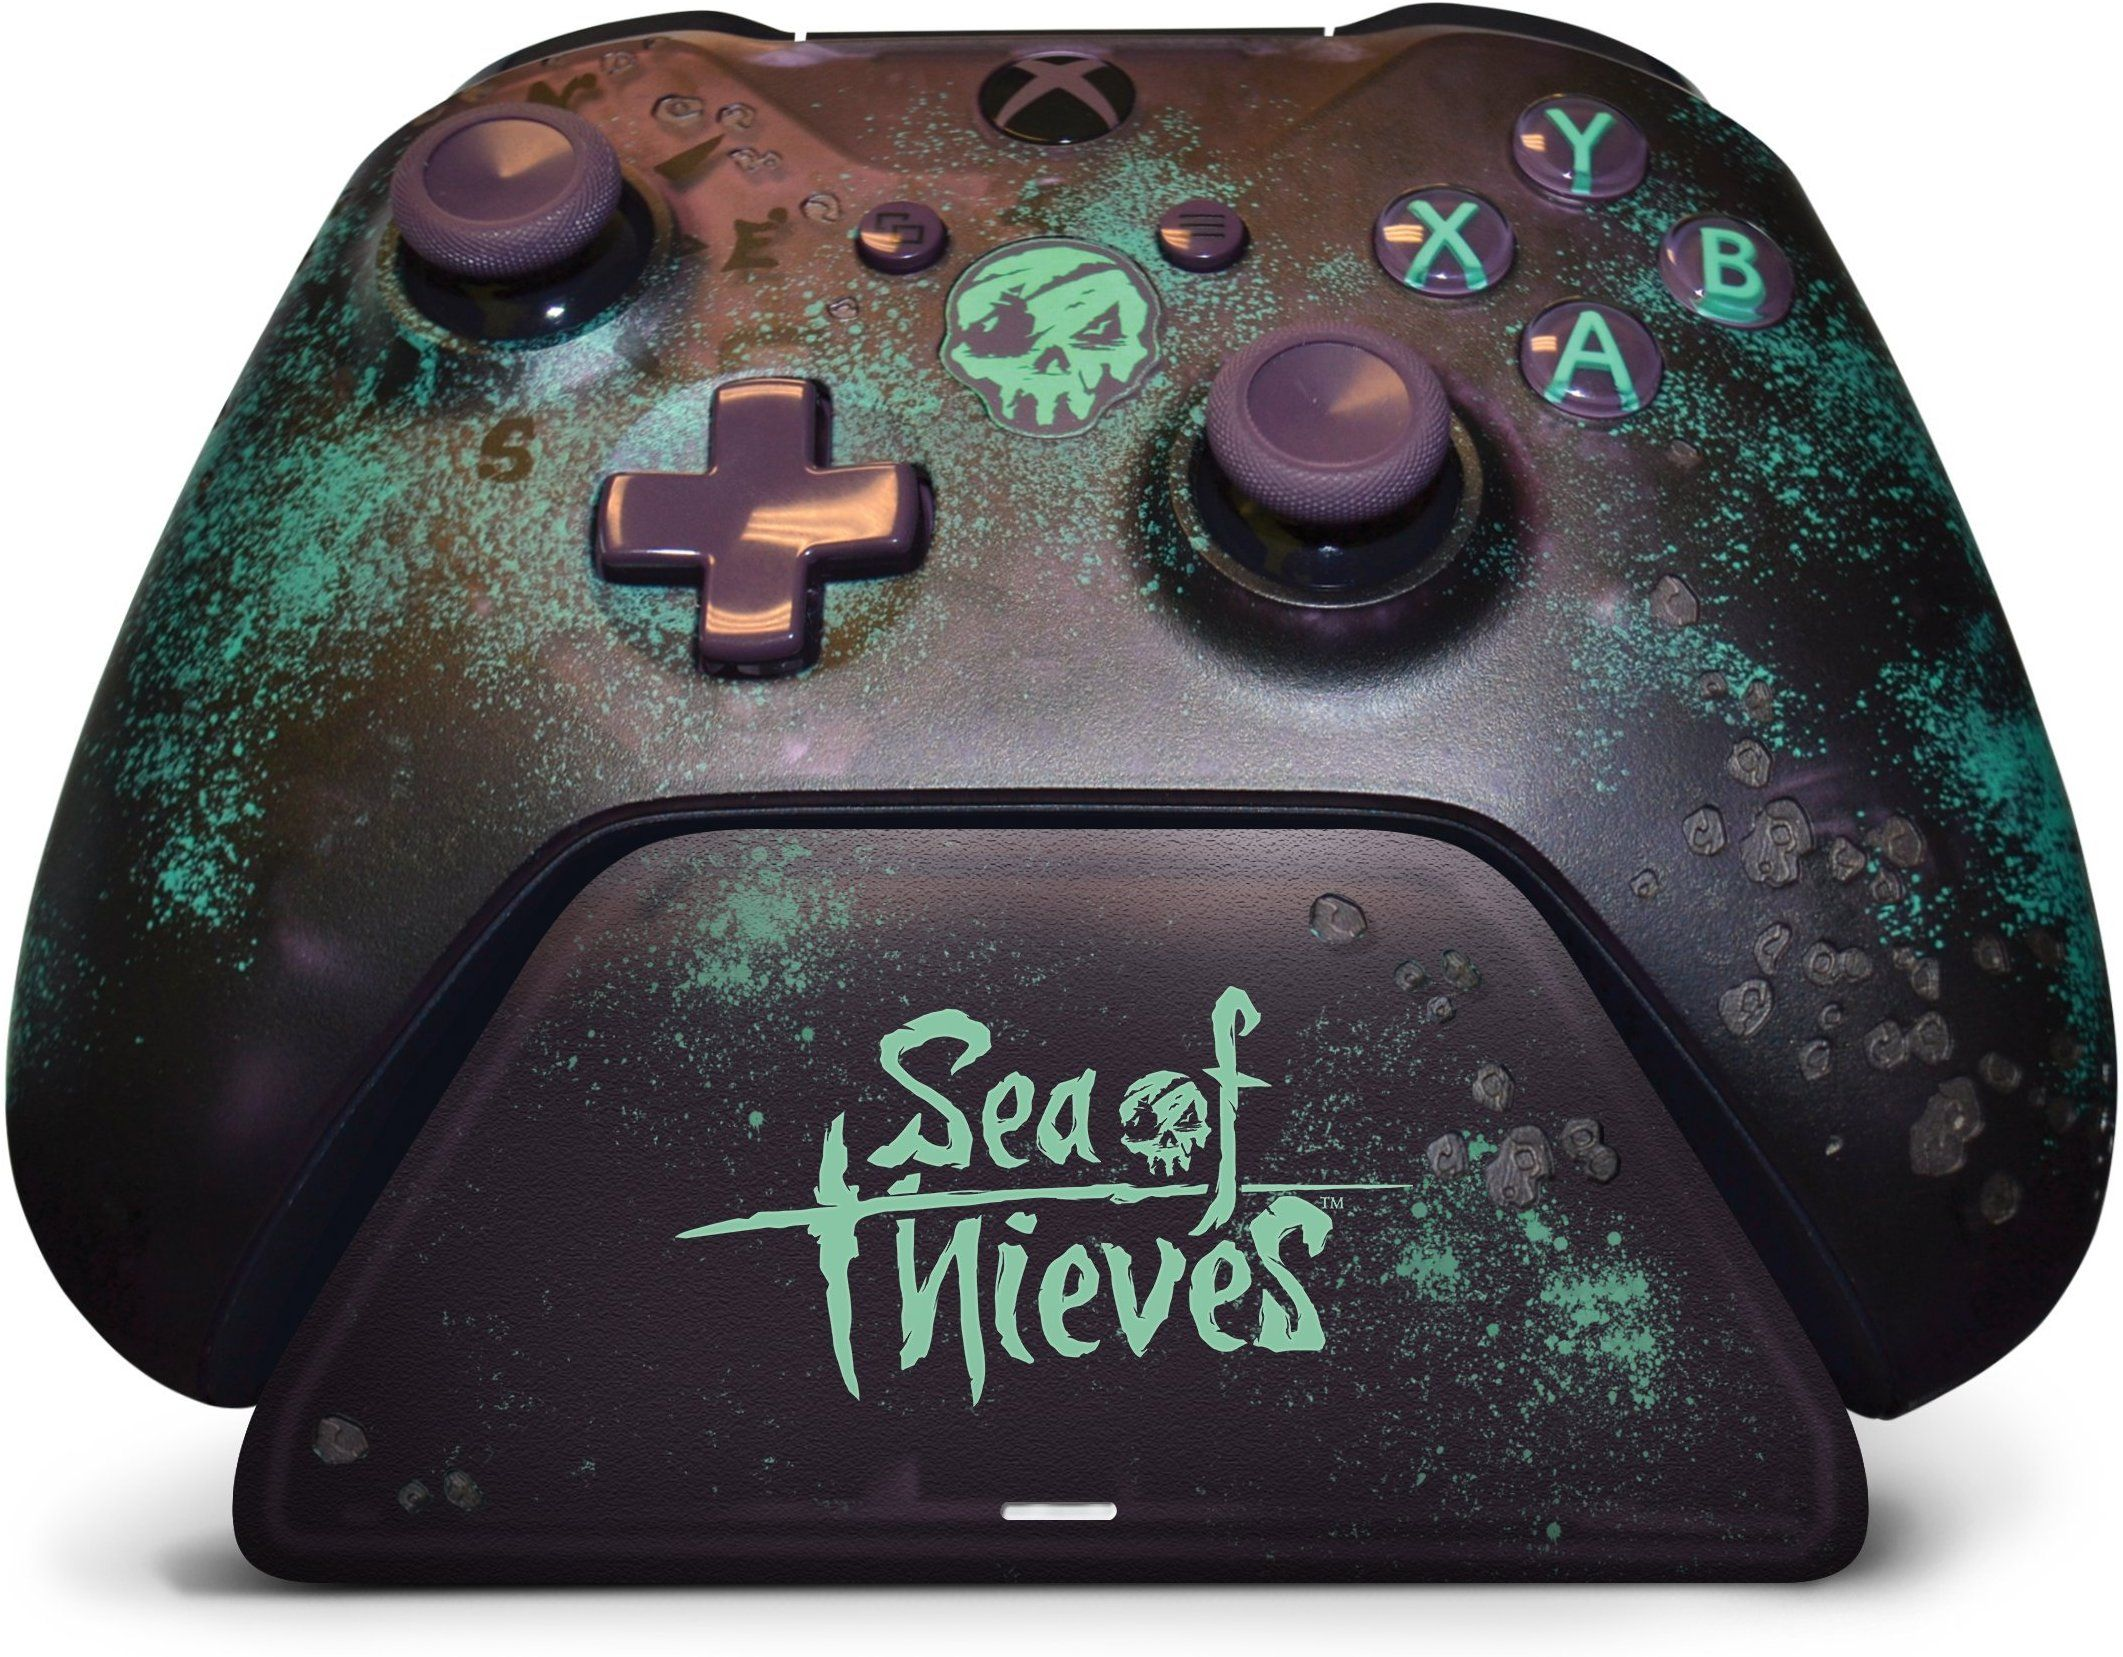 Videogames Controller Xboxone Gearseaofthieves Special Edition Xbox Pro Charging Stand For Xbox Elite Xbox One S And Xbox One X Controller Exact Co Manette